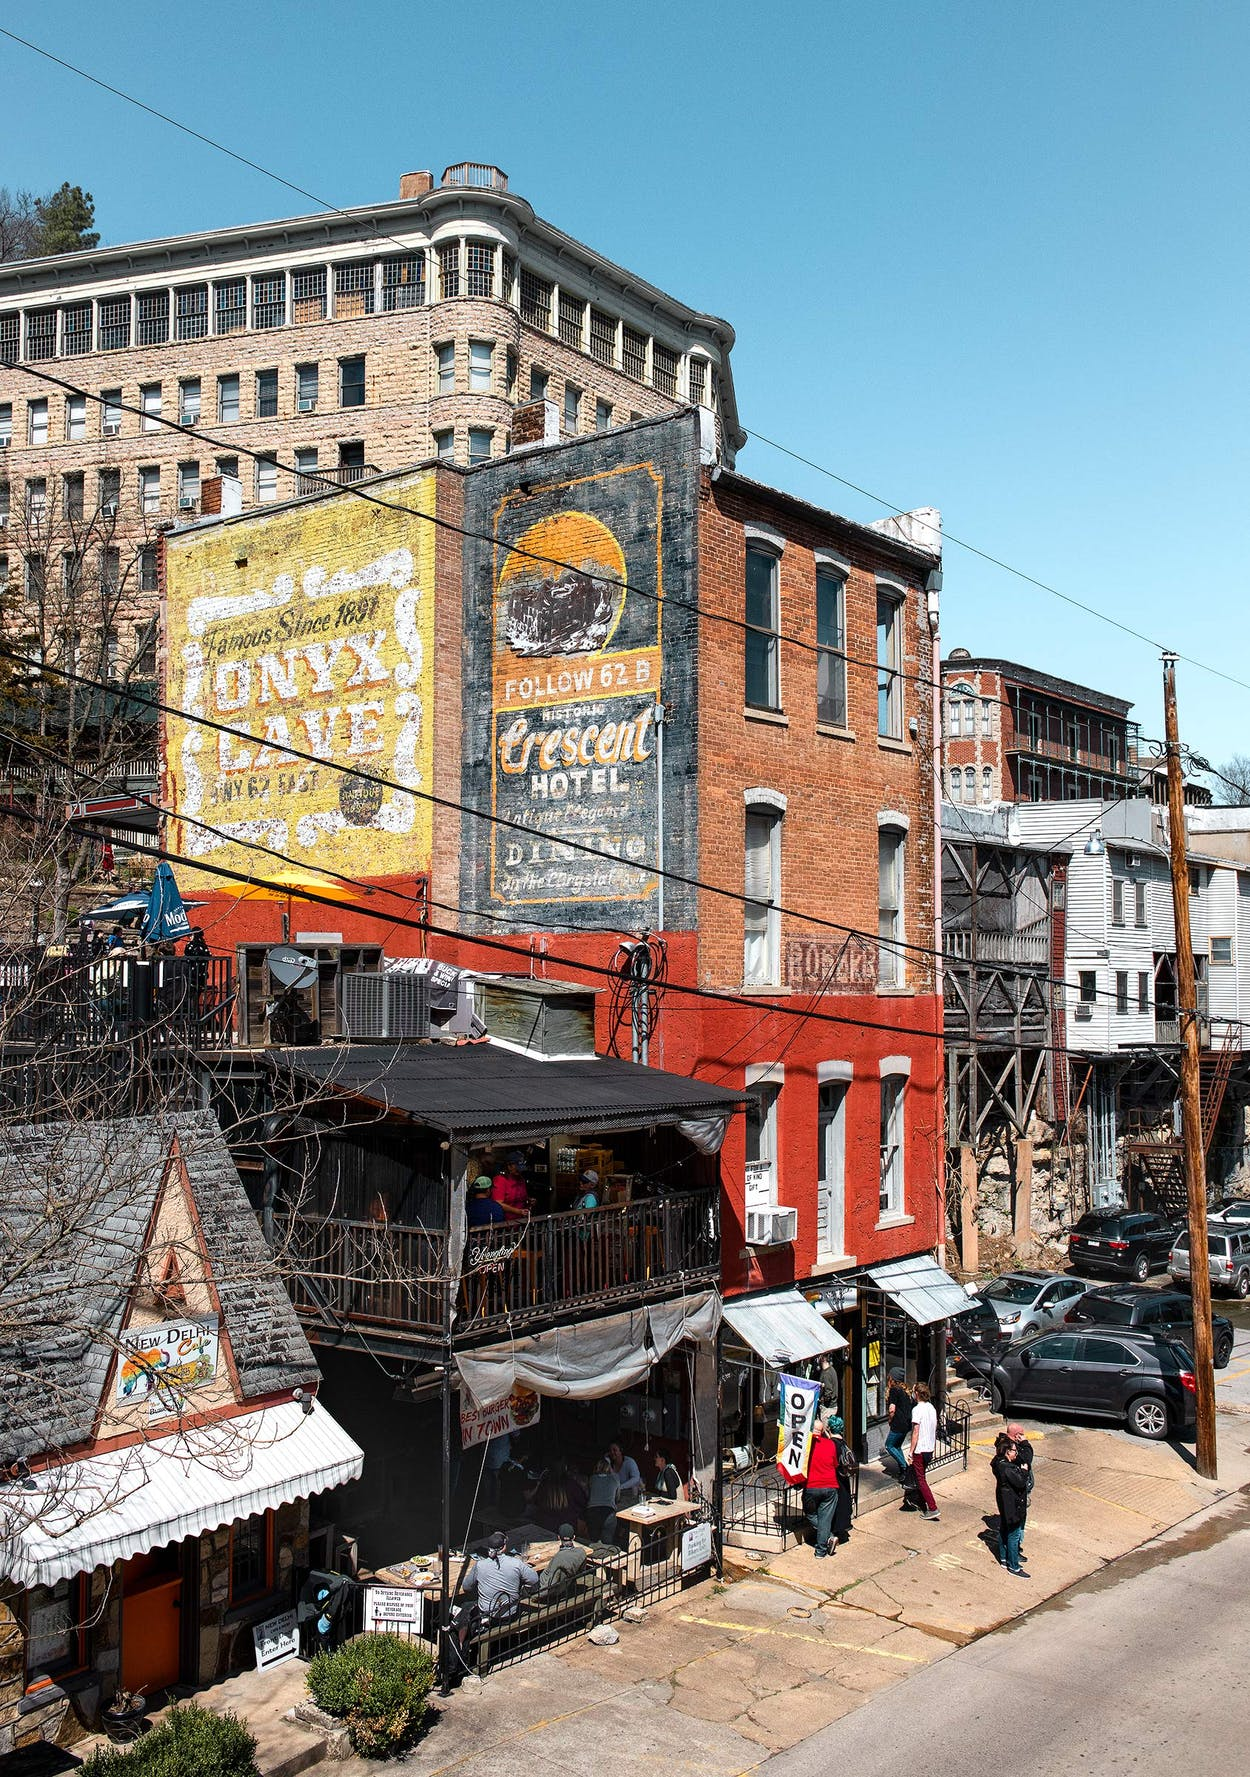 Downtown Eureka Springs on March 20, 2021.